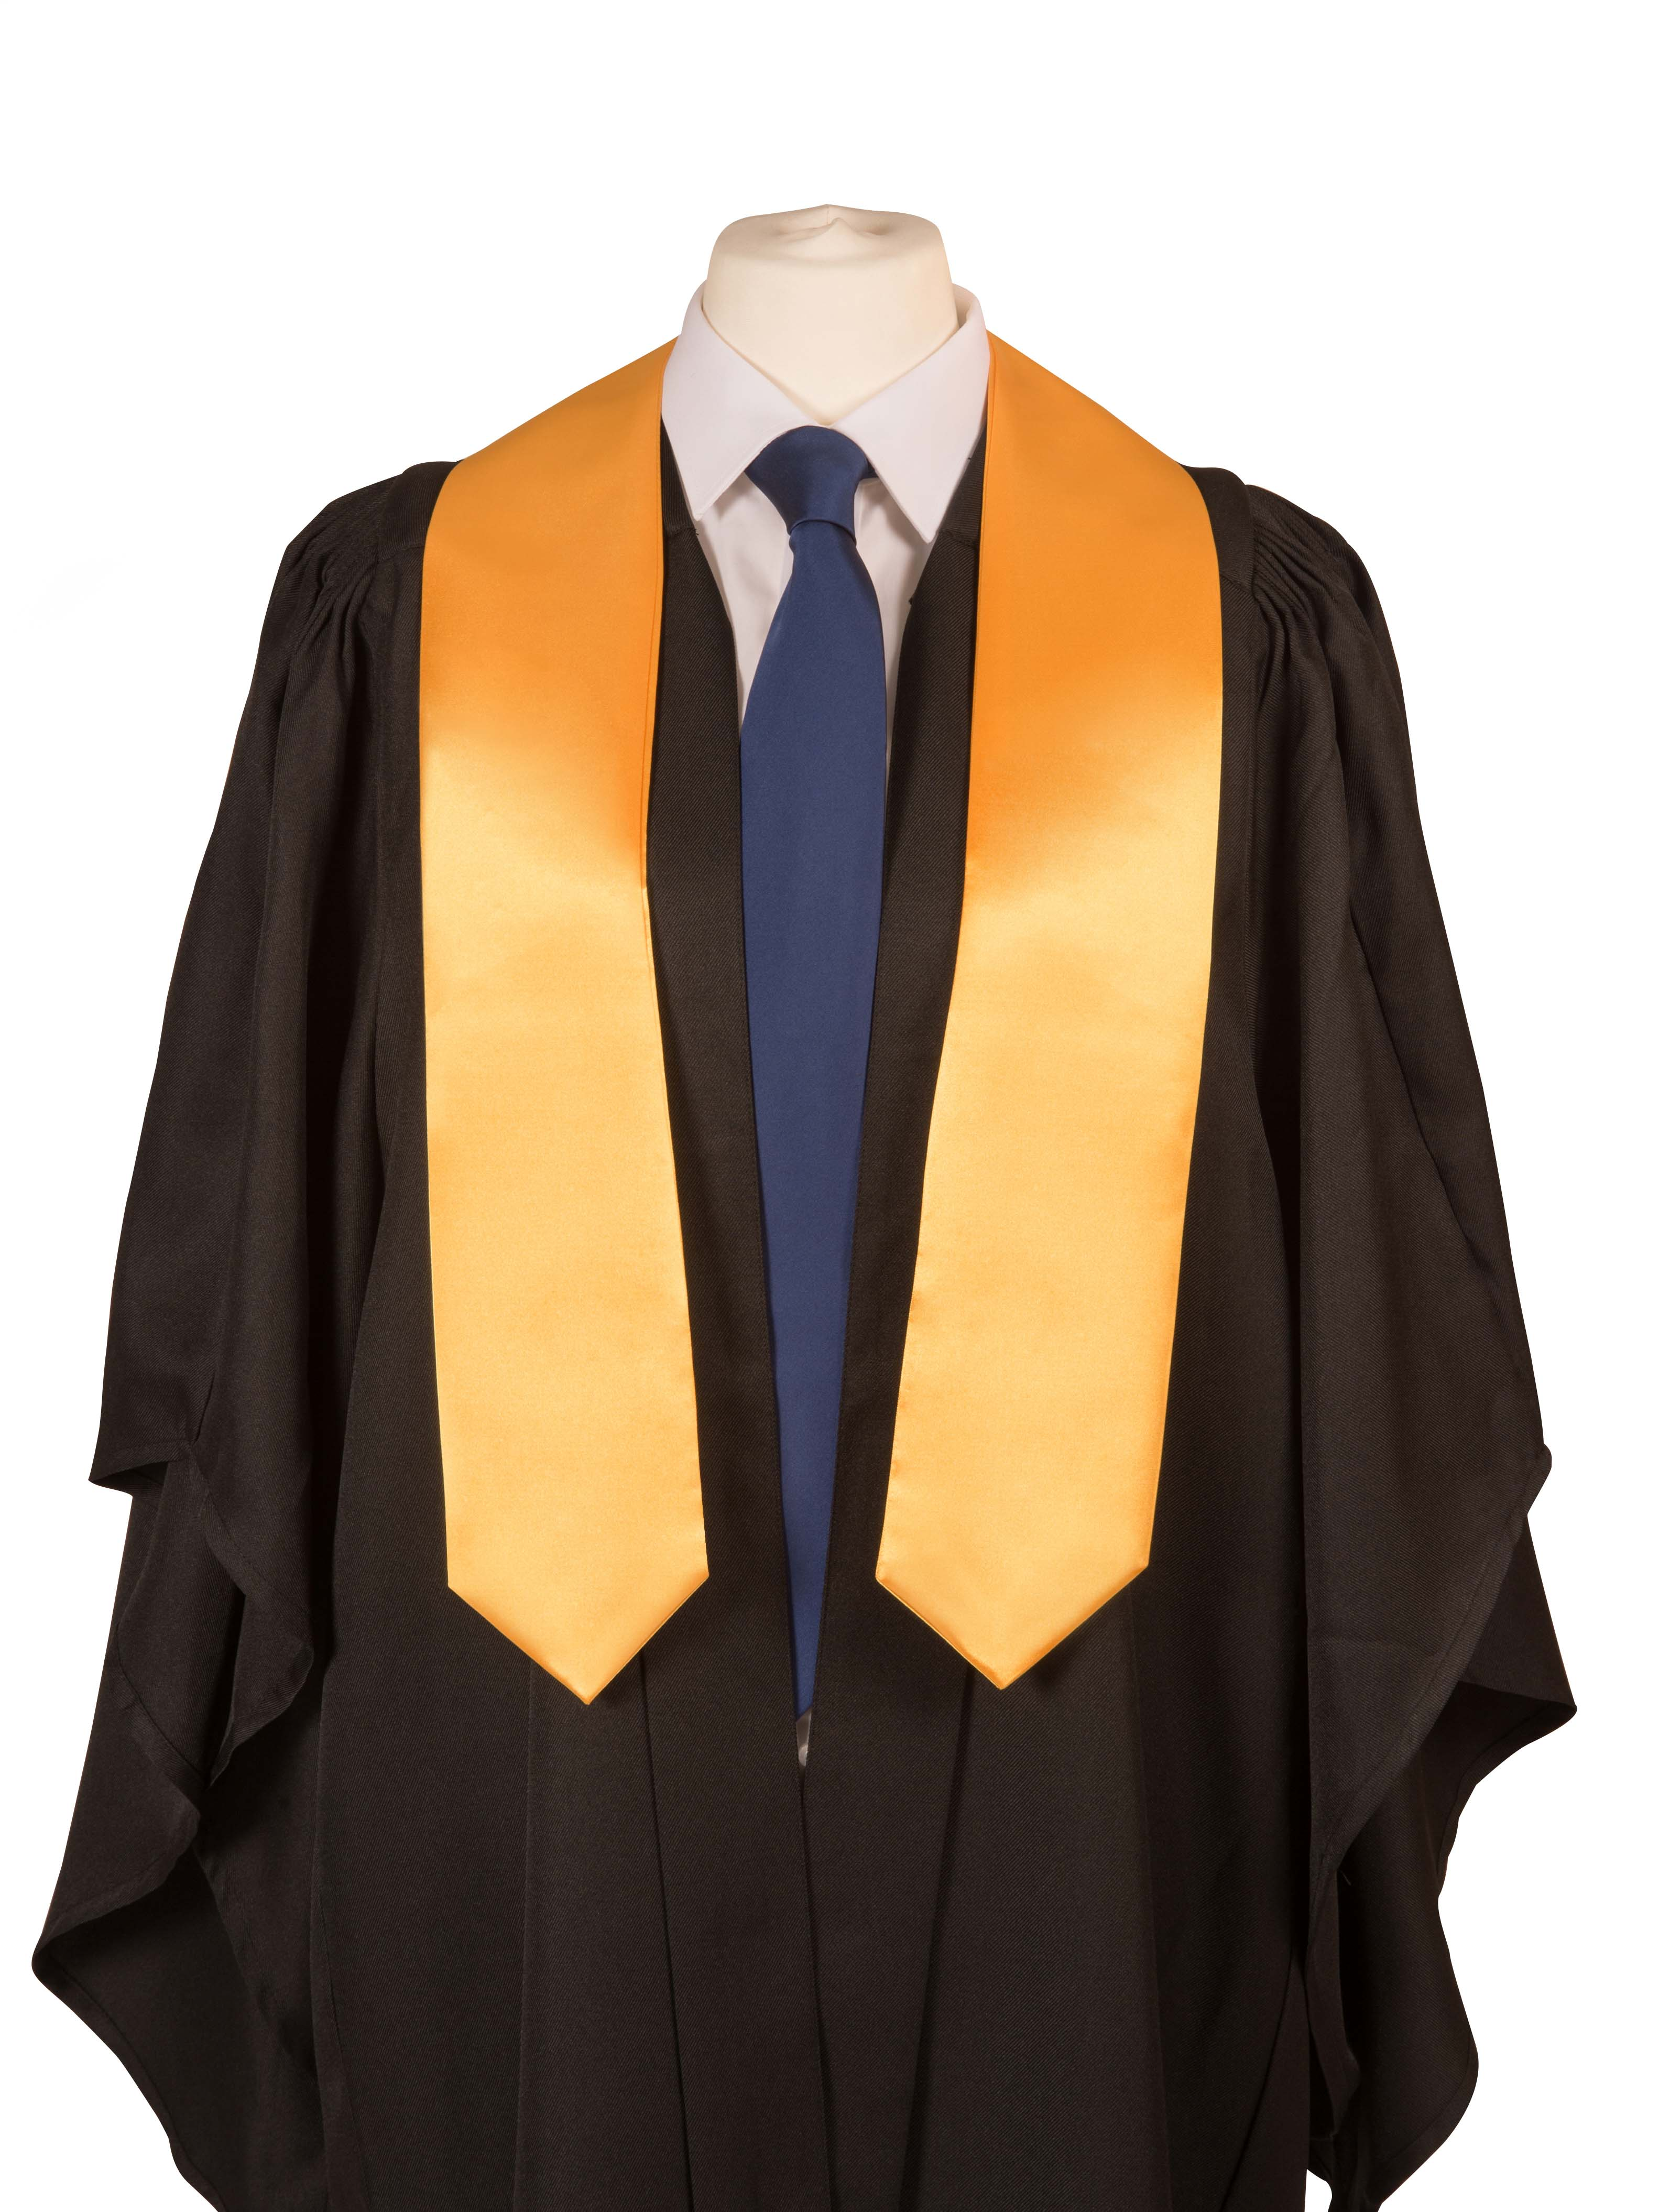 Graduation Stole - Graduation Gowns - Graduation Attire ...